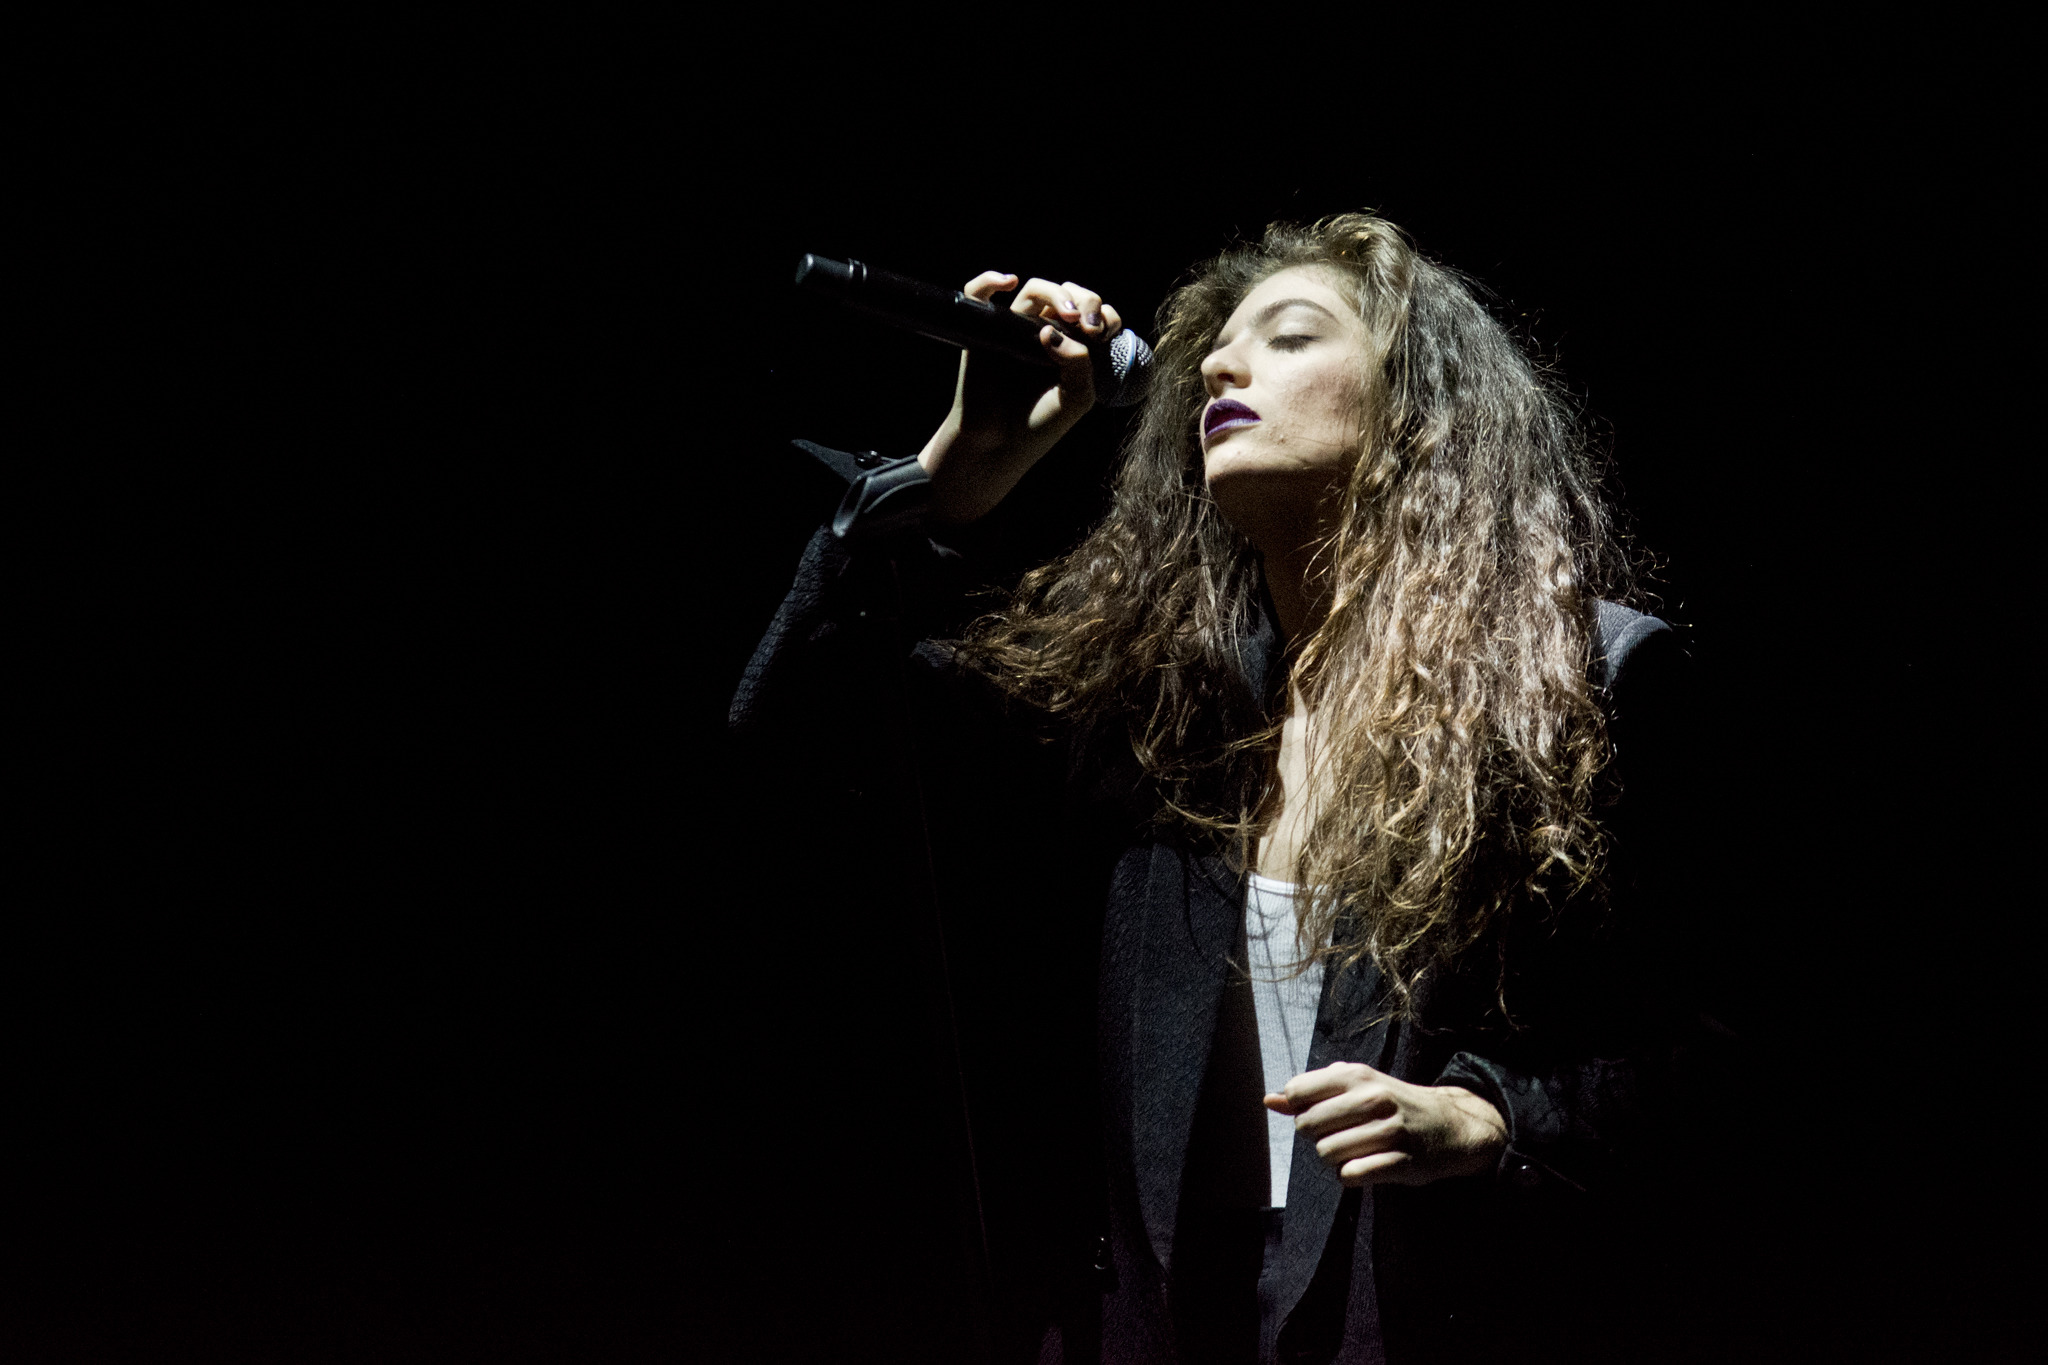 Lorde + Majical Cloudz | JBL Live at Pier 97; Sept 14. United Palace Theatre; Sept 15, 16.